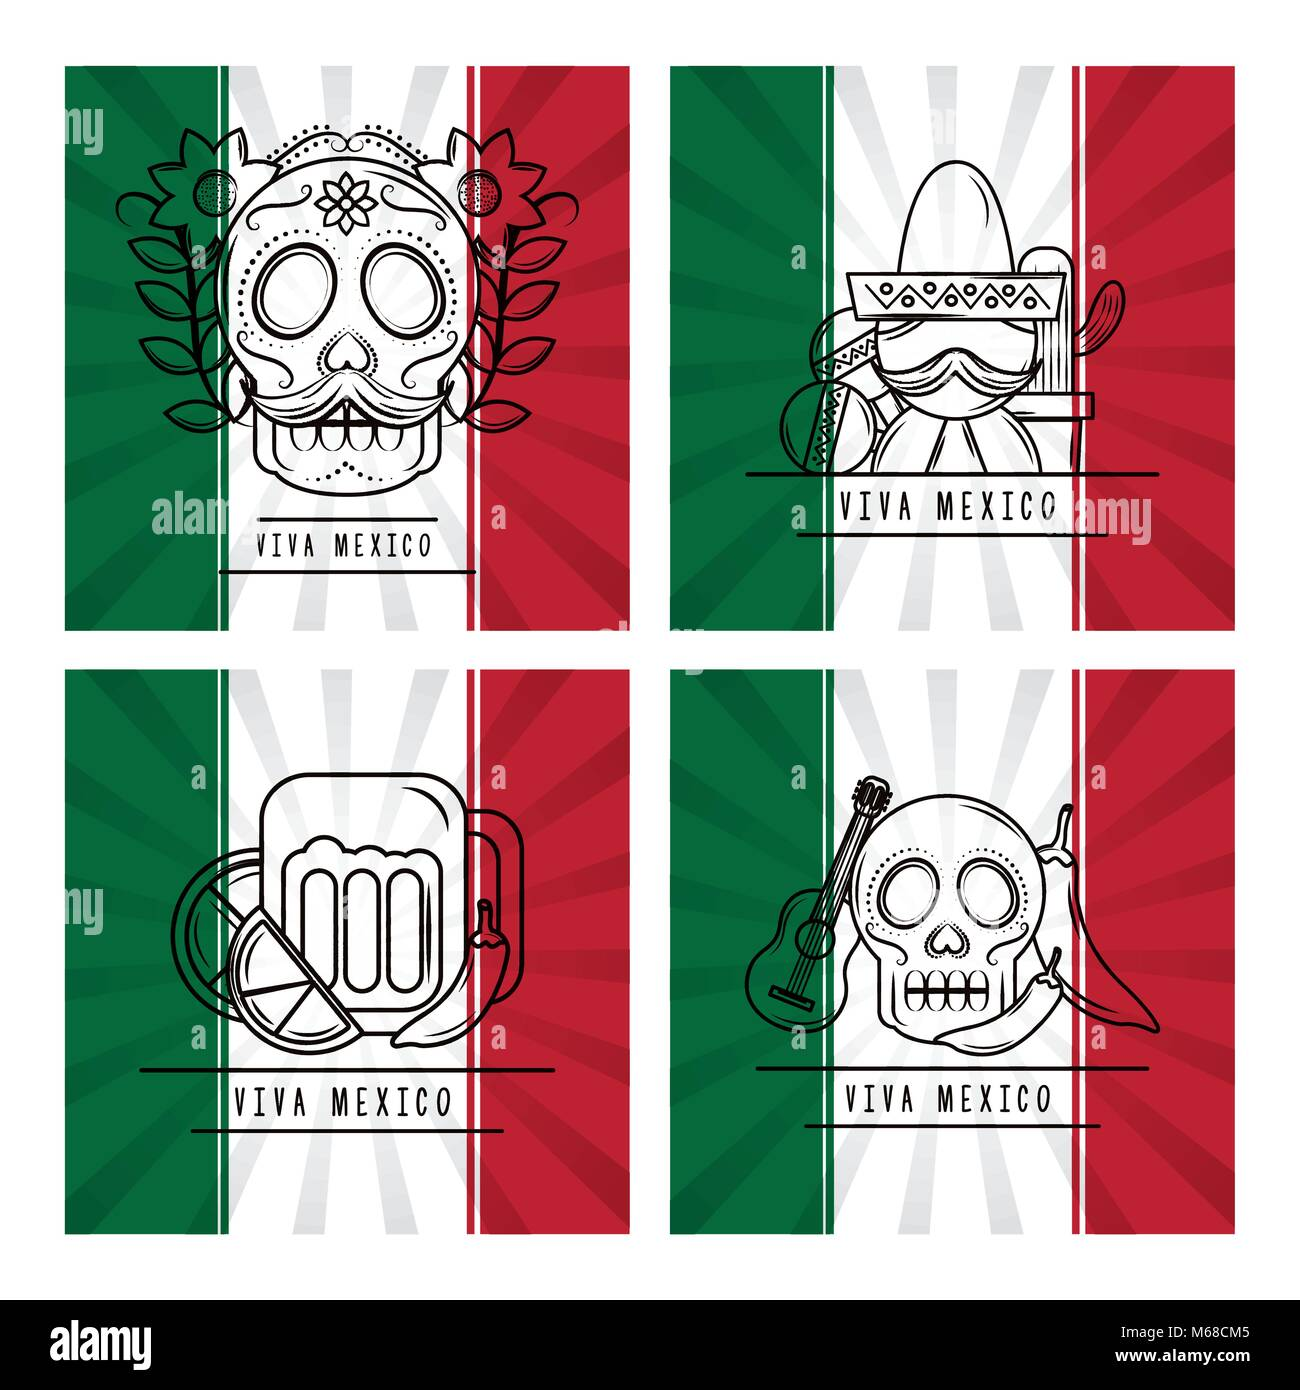 viva mexico traditional card - Stock Image